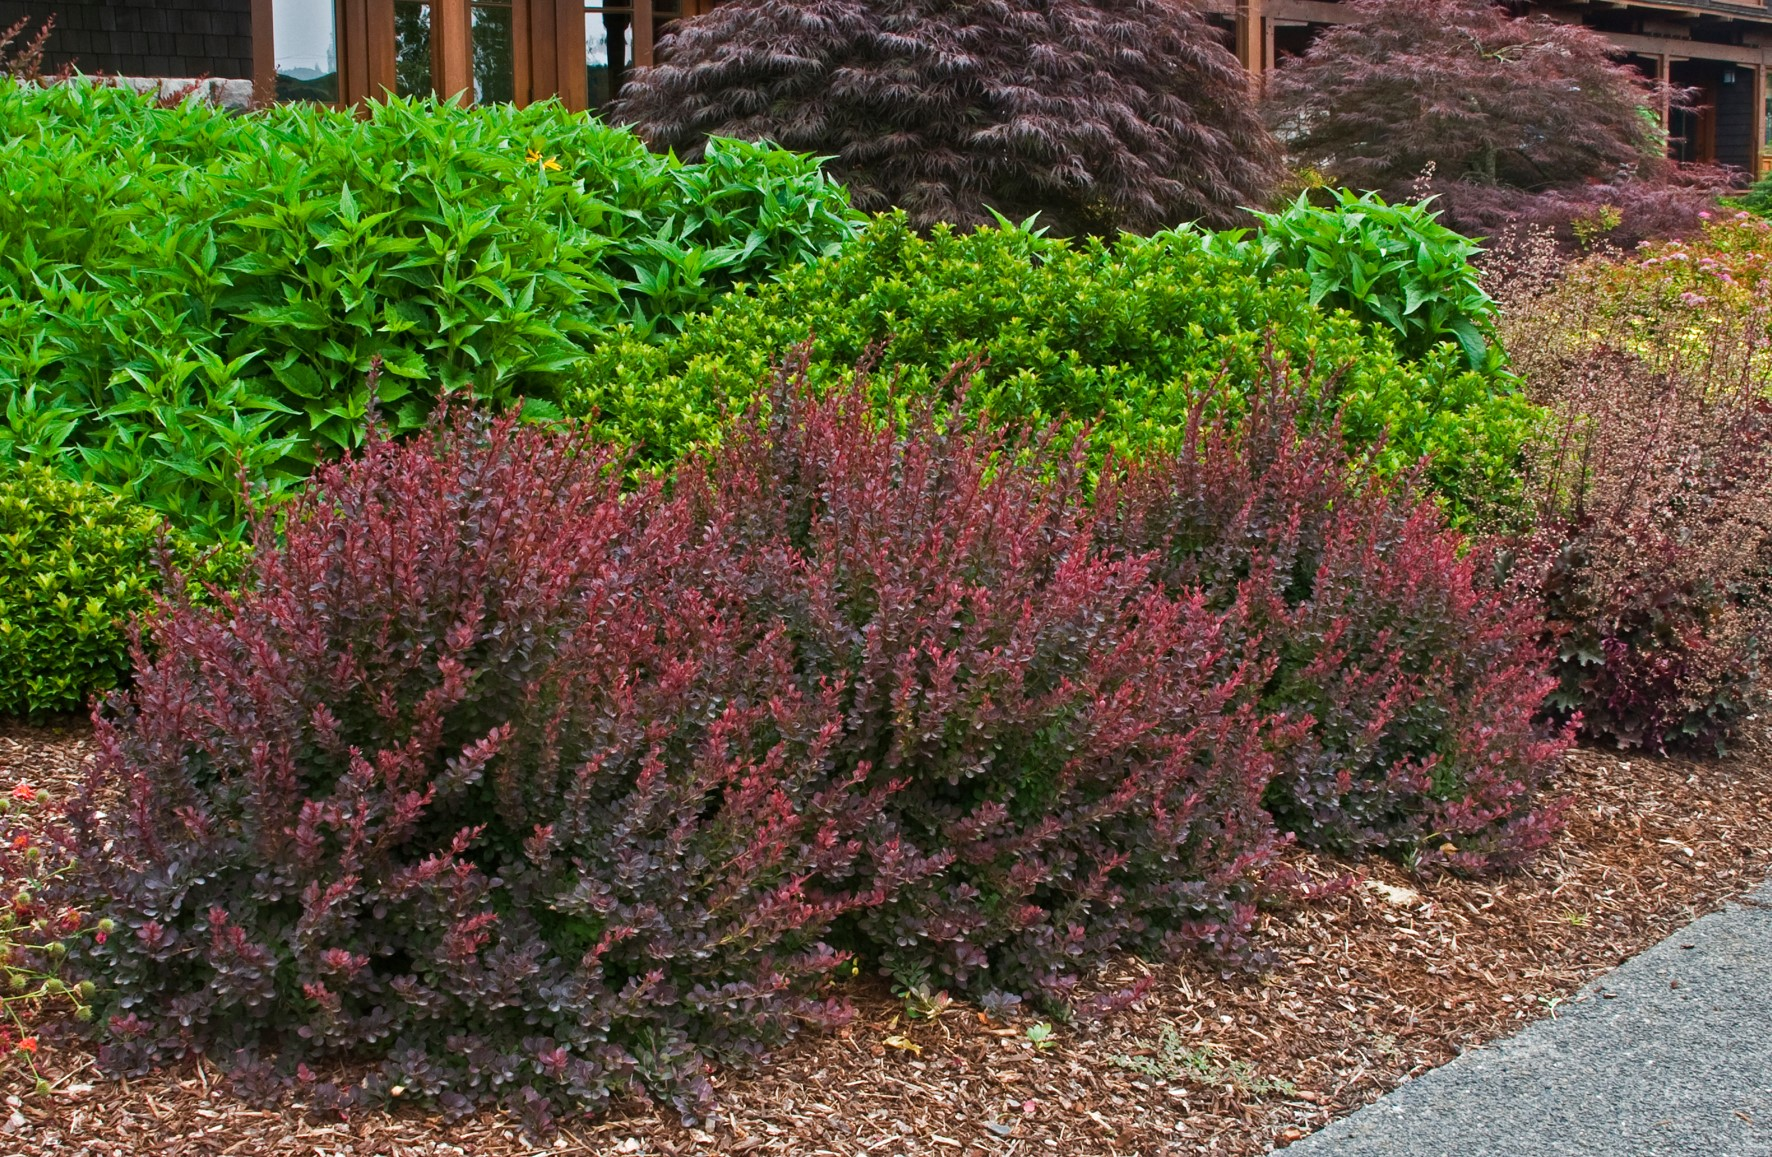 Berberis Royal Burgundy